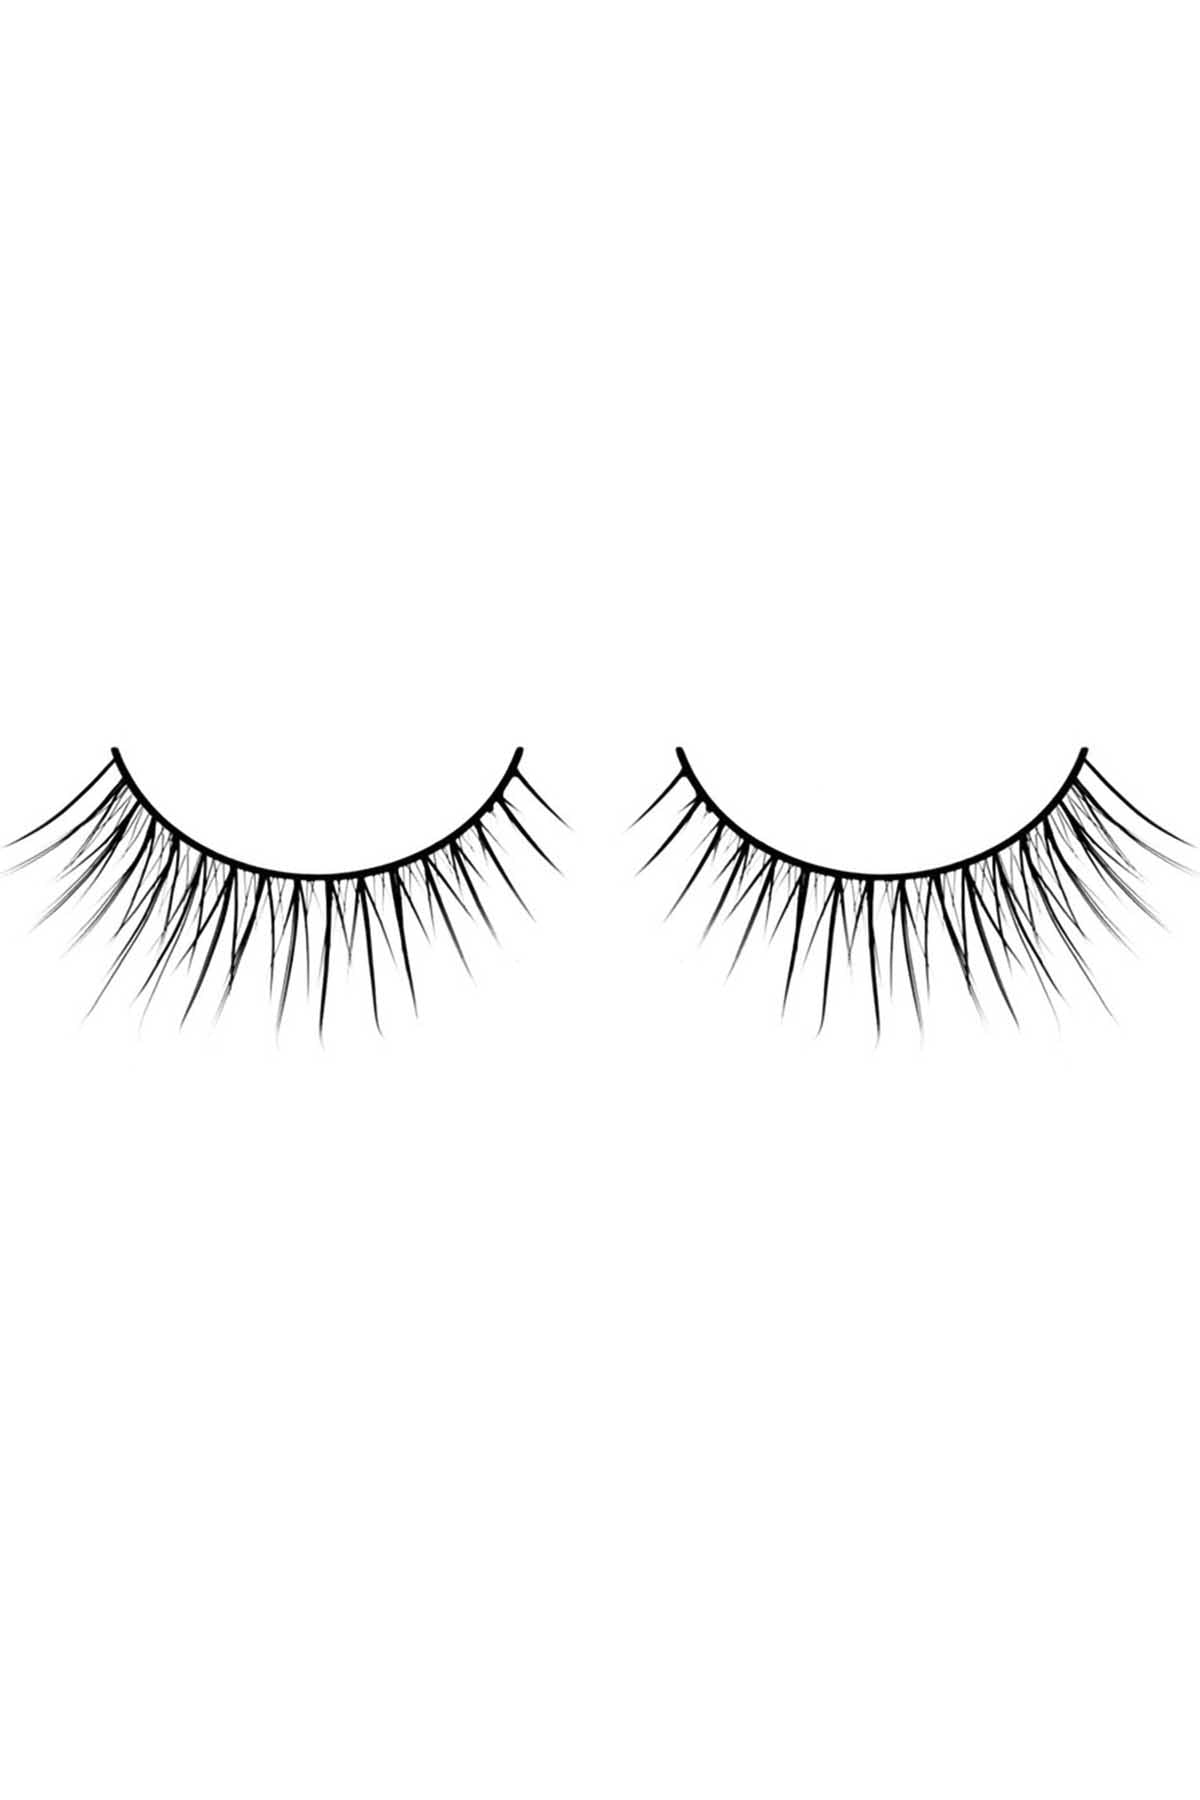 7d058834081 Baci Black Soft Curl Natural Look Deluxe Eyelashes | CheapUndies